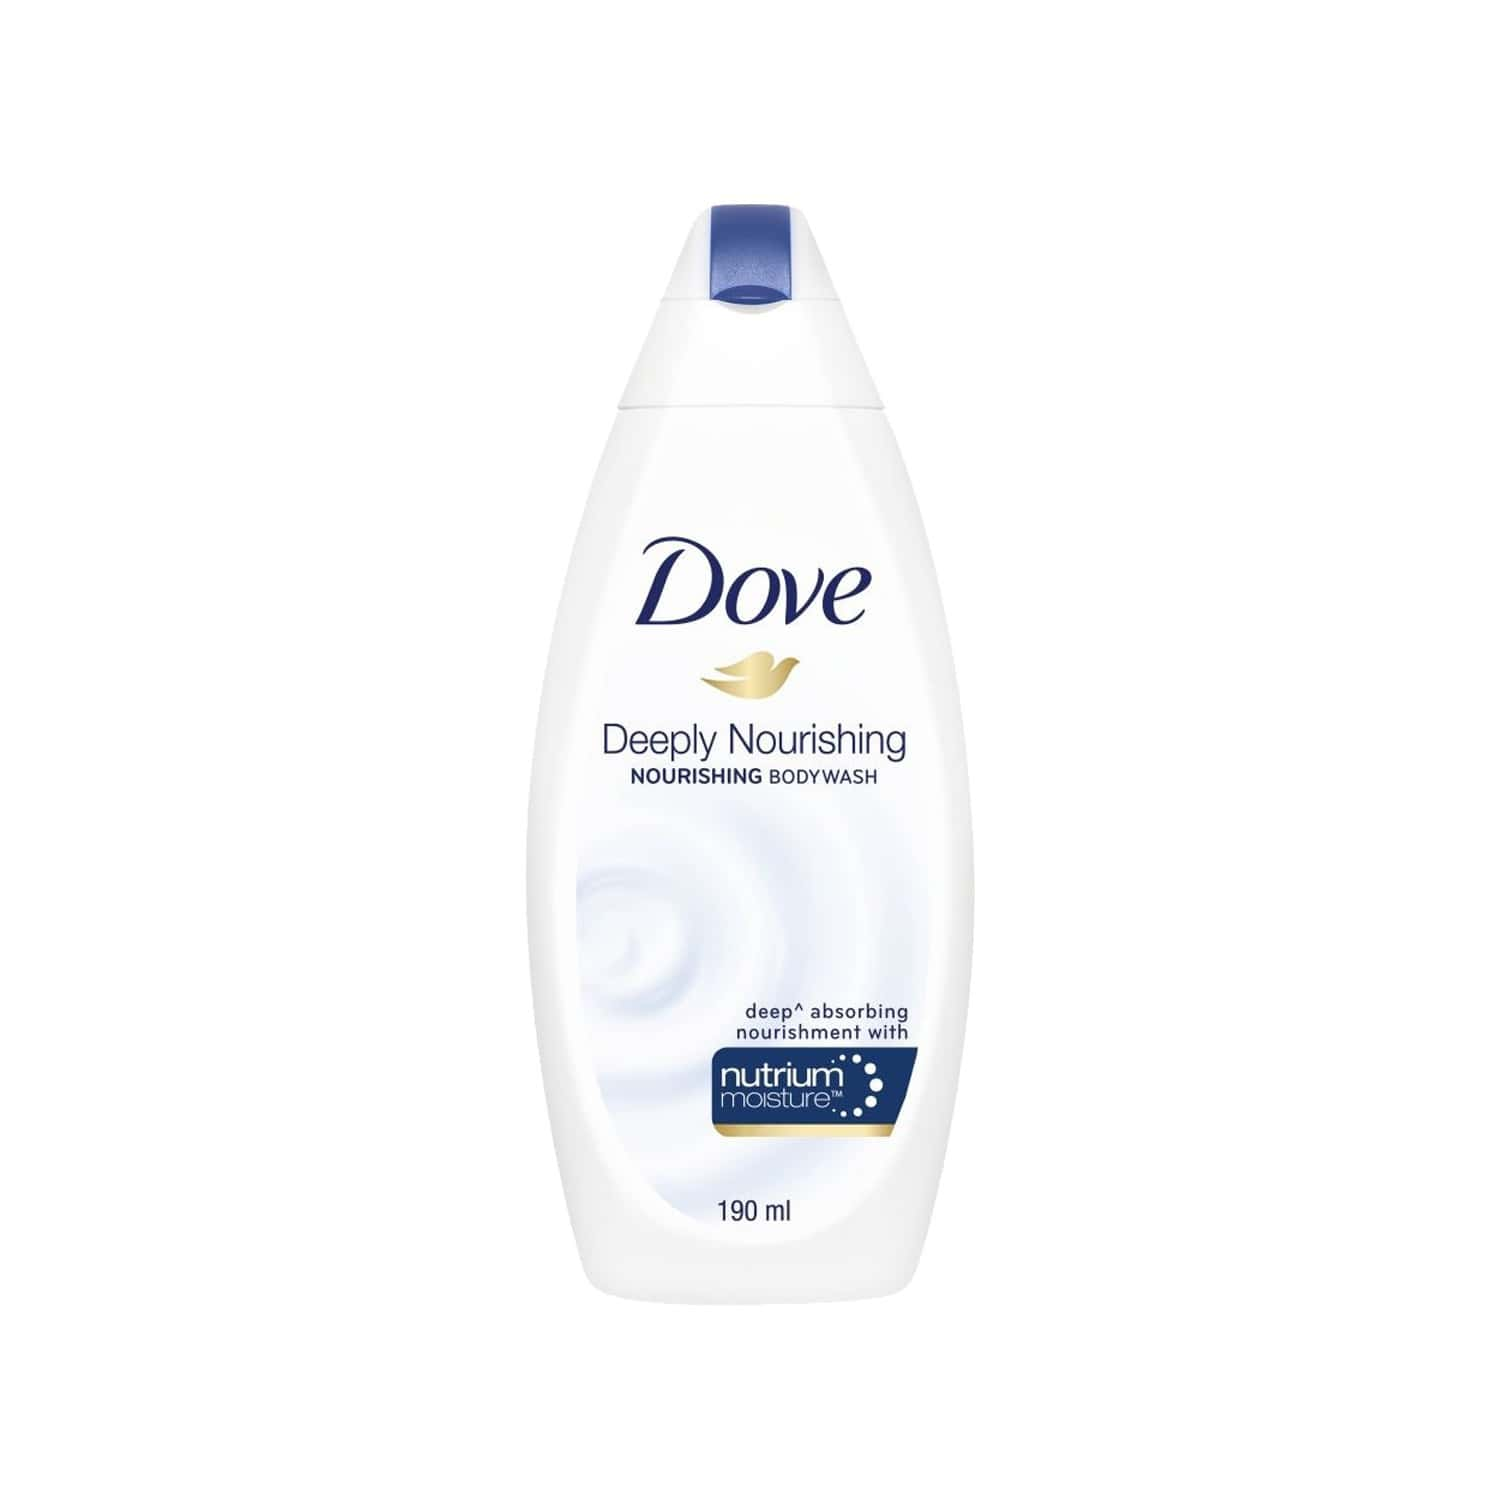 Dove Deeply Nourishing  Body Wash  Bottle Of 190 Ml